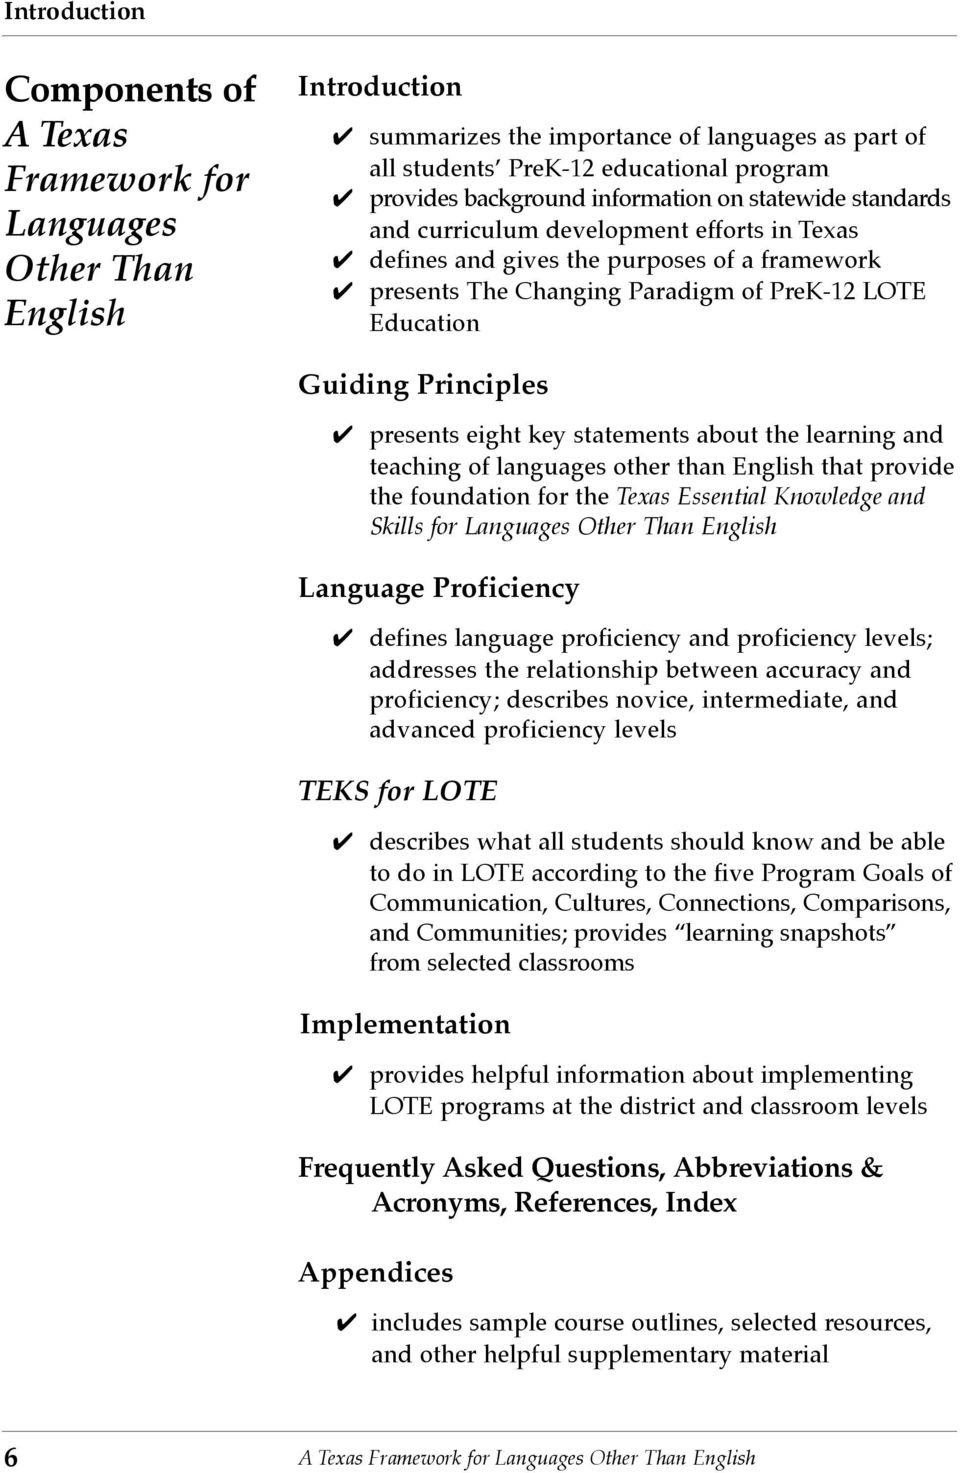 Guiding Principles presents eight key statements about the learning and teaching of languages other than English that provide the foundation for the Texas Essential Knowledge and Skills for Languages